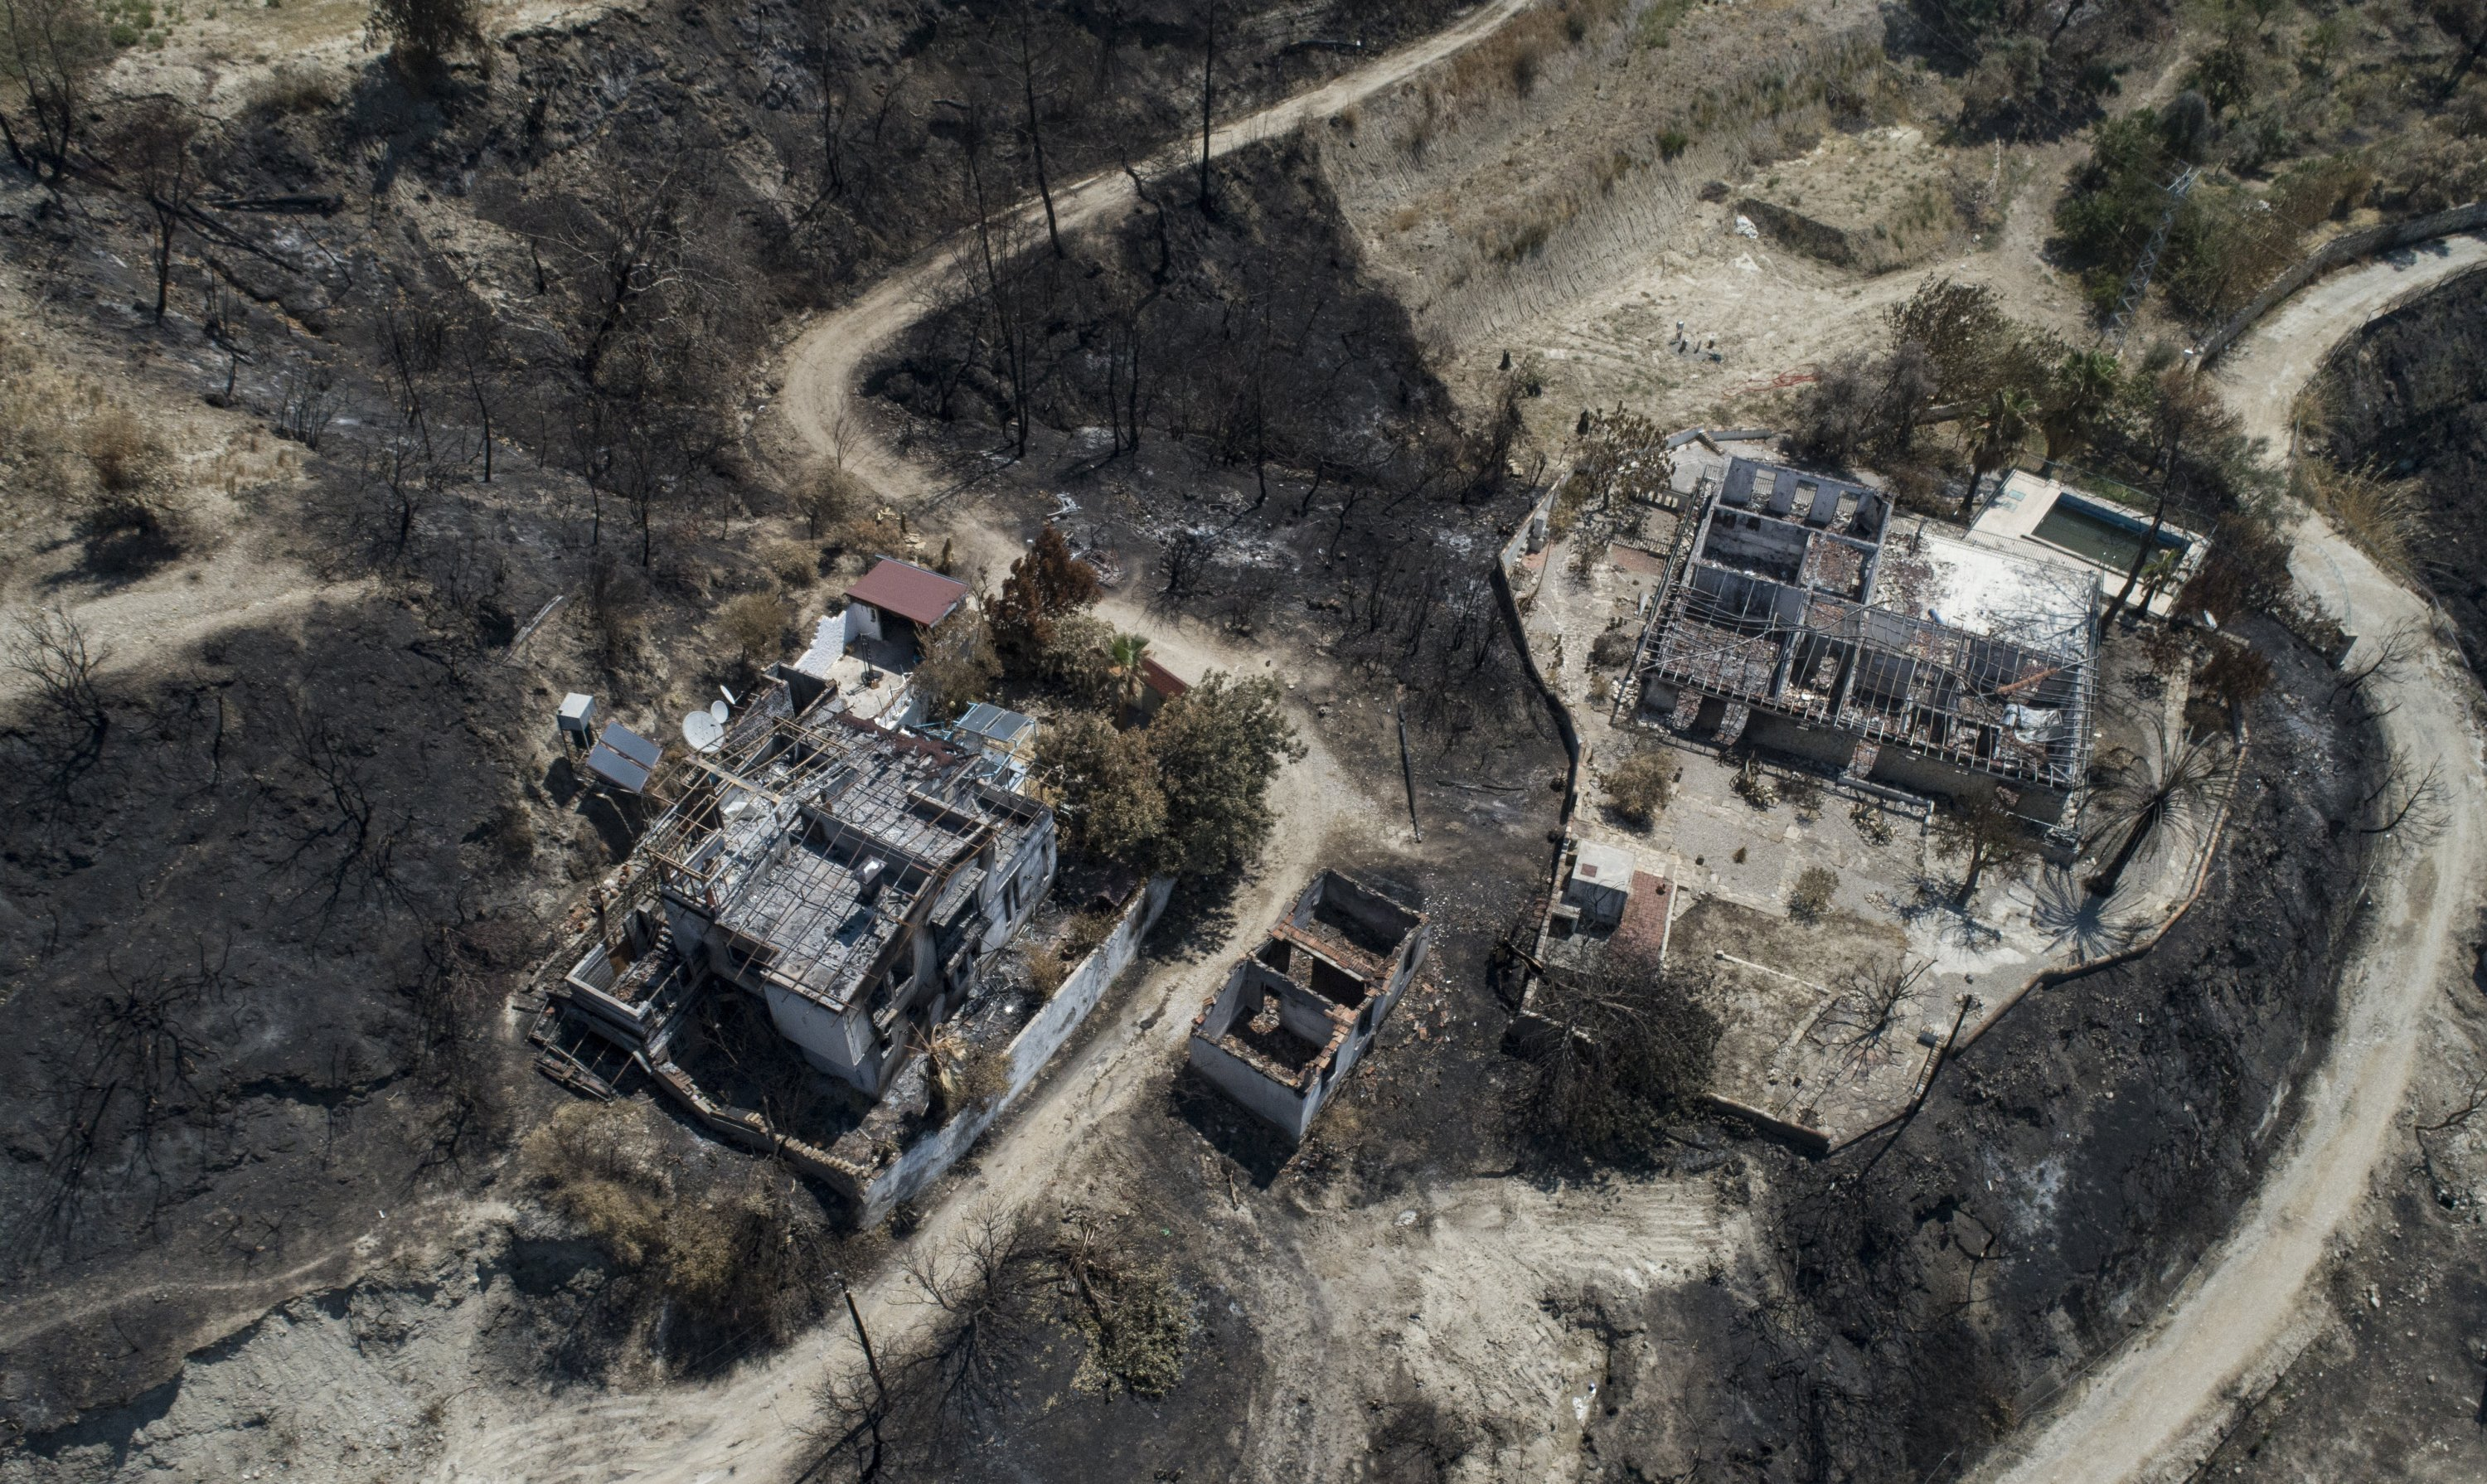 An aerial view taken with a drone shows burned houses after a wildfire at the Kalemler village of the Manavgat district in Antalya, Turkey, Aug. 9, 2021. (EPA Photo)